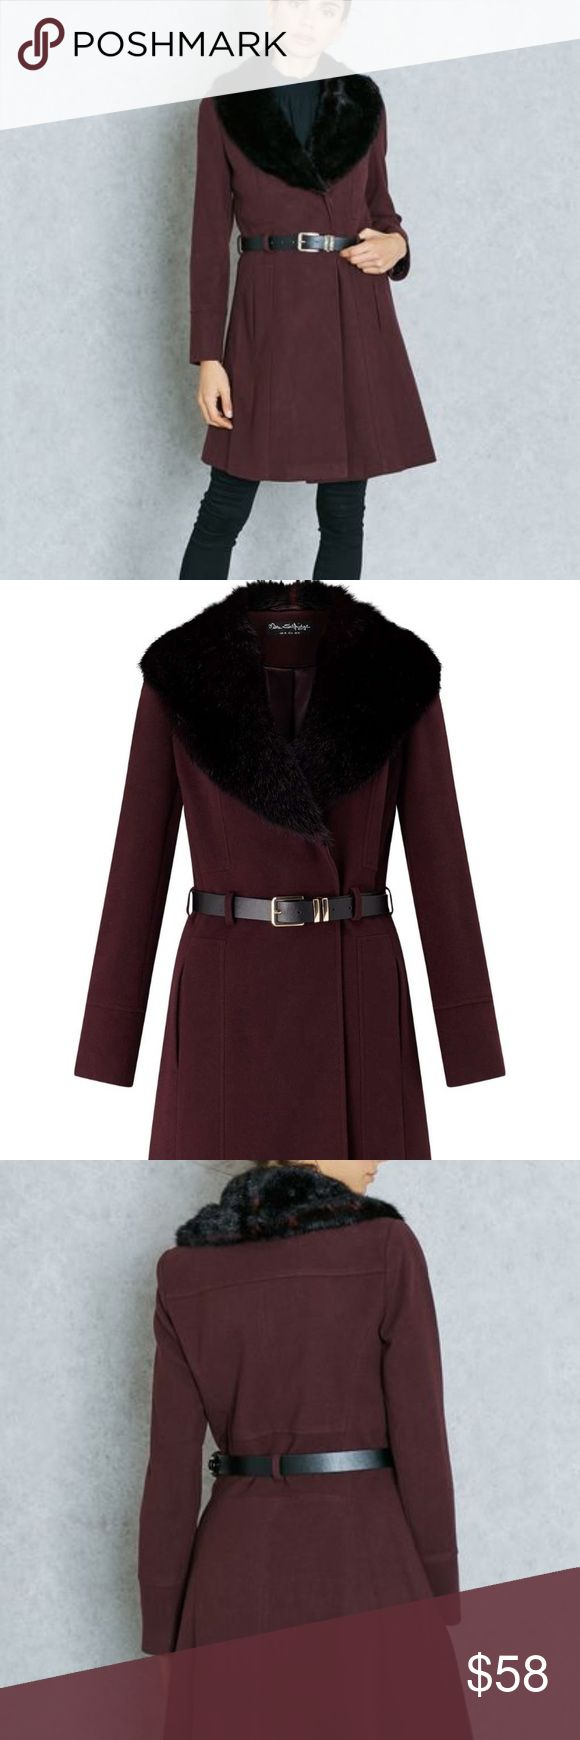 NWOT Miss Selfridge coat New without tags; Gorgeous deep eggplant polyester/viscose/spandex coat with faux fur collar and belt with goldtone buckle; lined; front on-seam pockets; refer to pics for fit; Smoke-free/pet-free home. Miss Selfridge Jackets & Coats